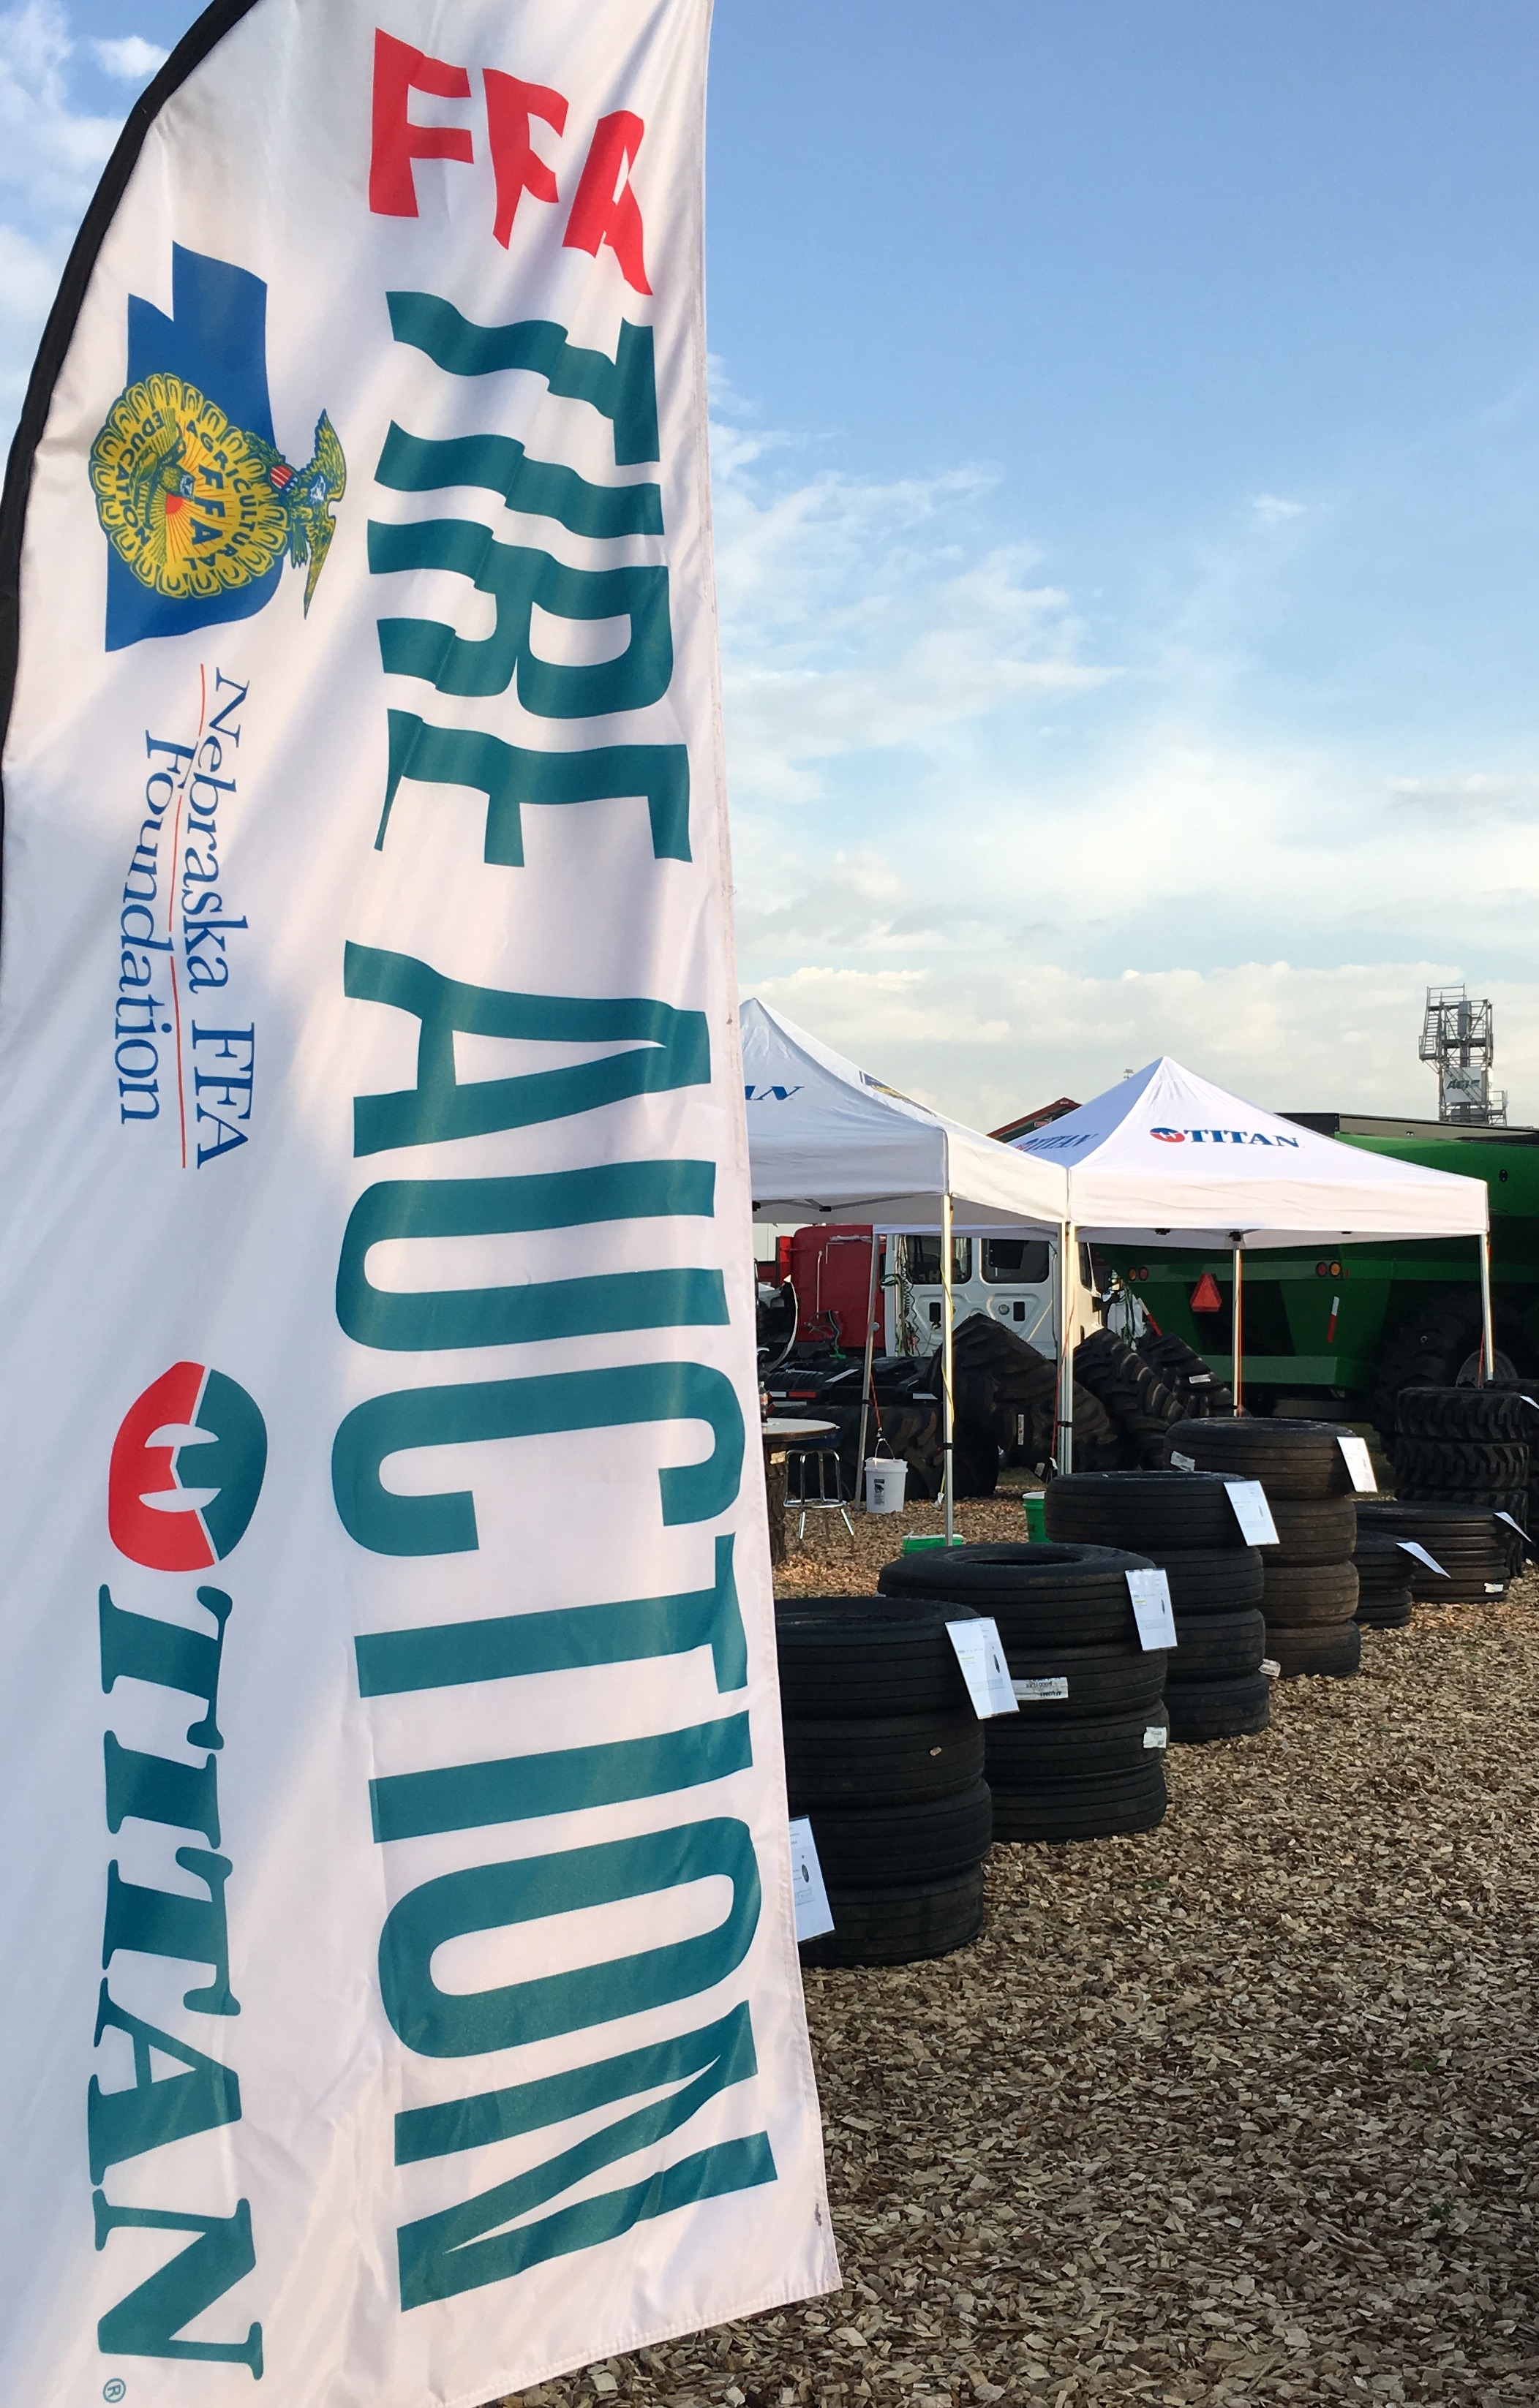 Nebraska FFA Foundation Auction includes tires and John Deere gator